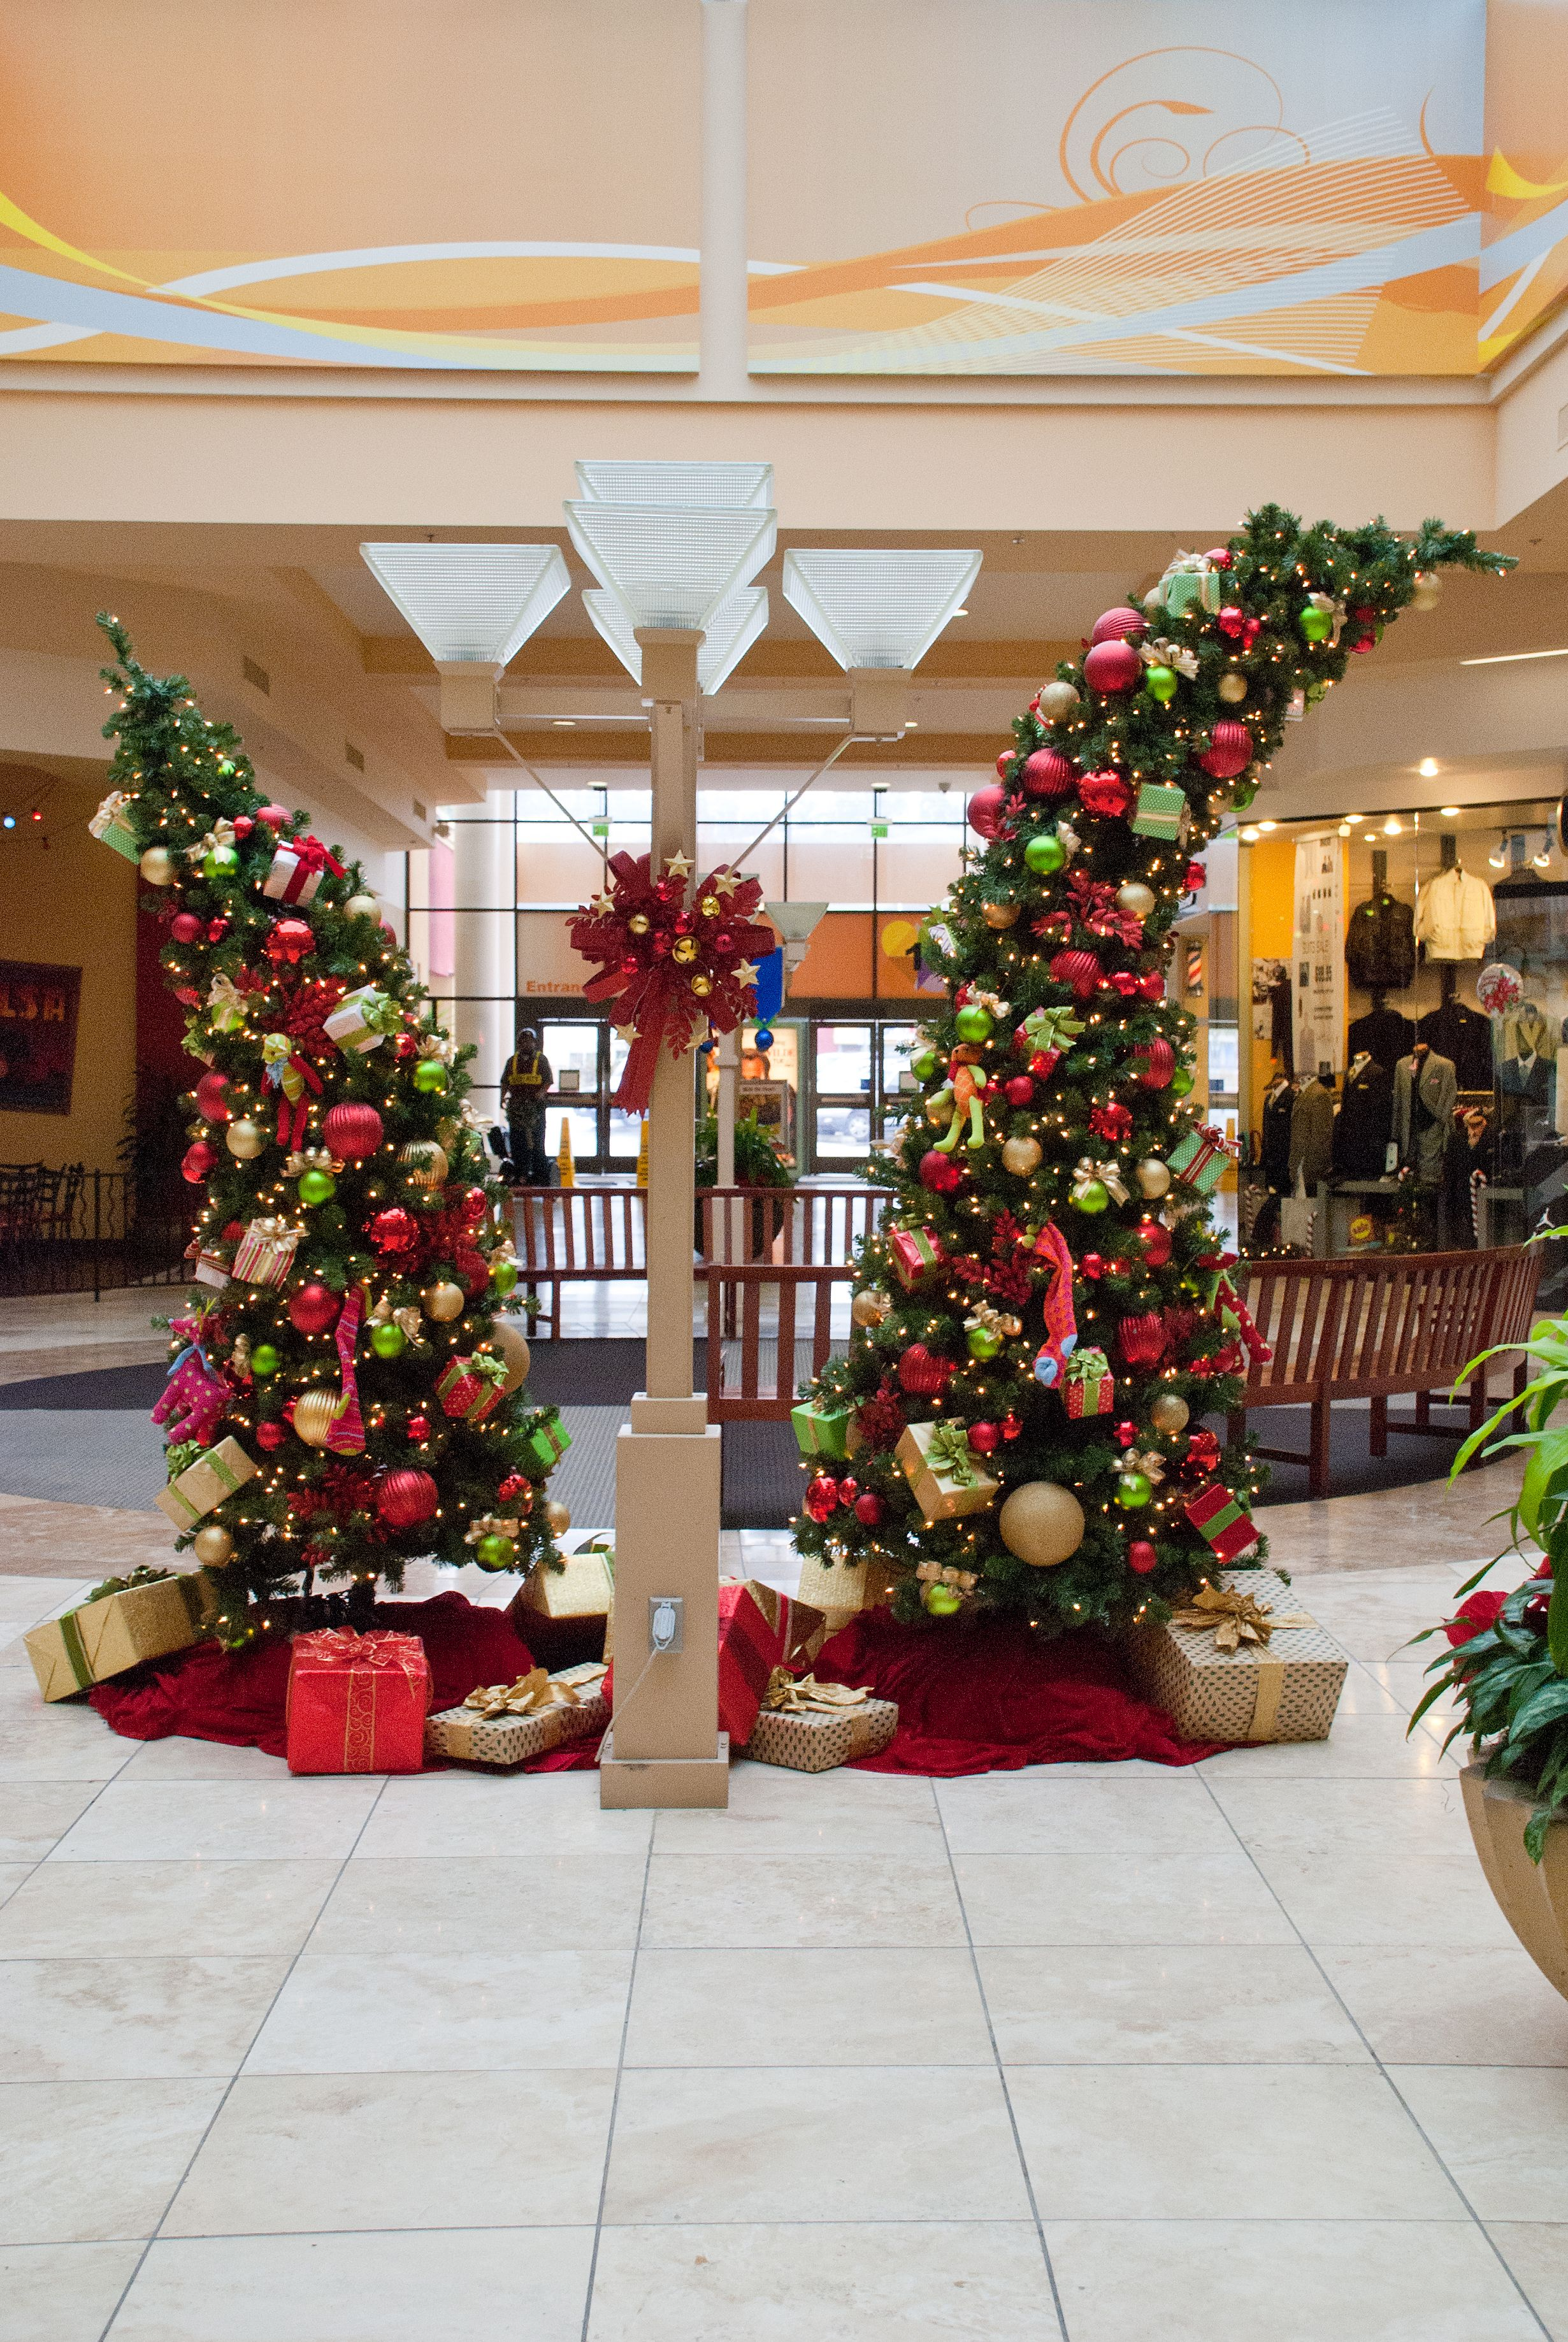 Commercial Holiday Decorations Ambius Whimsical Christmas Trees Whimsical Christmas Decor Christmas Tree Decorations